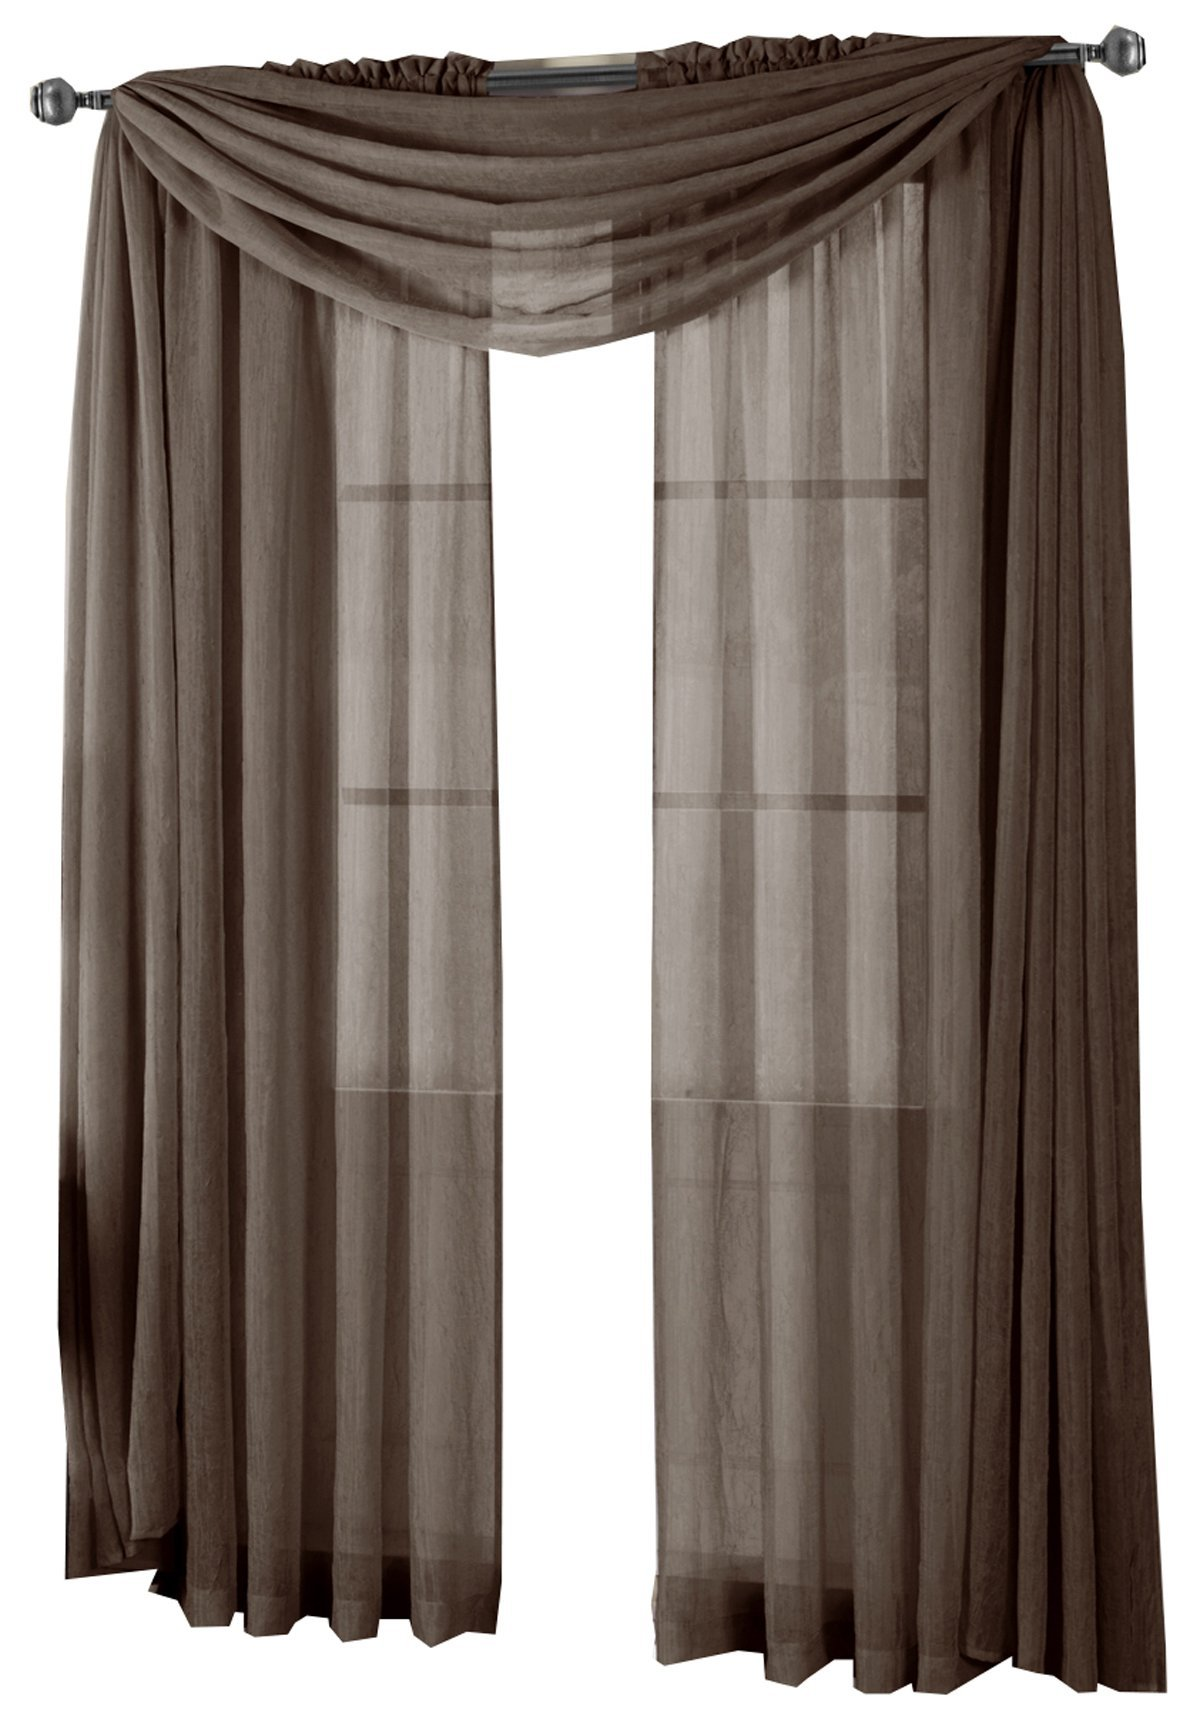 Abri Chocolate-Brown Crushed Sheer Scarf , 50x216 inches, by Royal Hotel